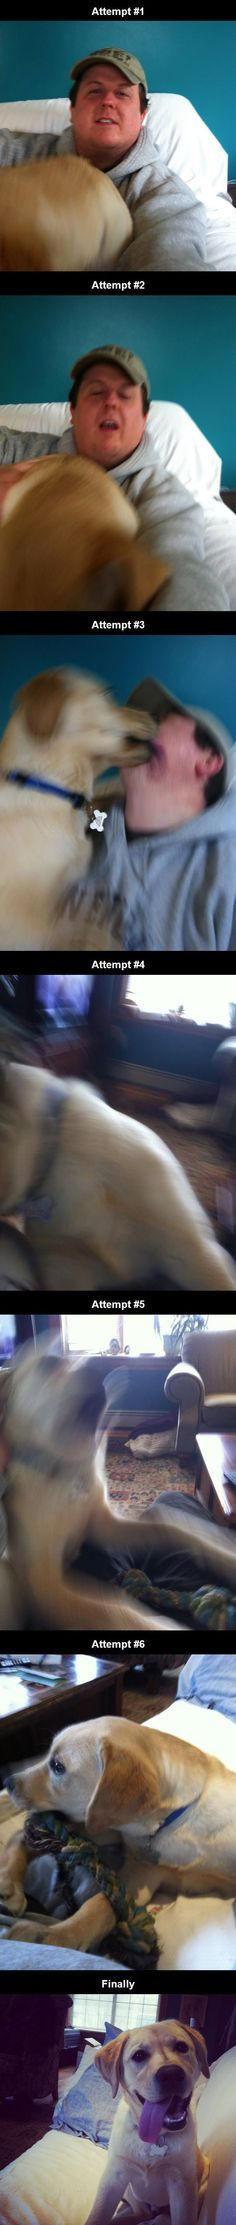 What Happens When You Try To Photograph a Puppy